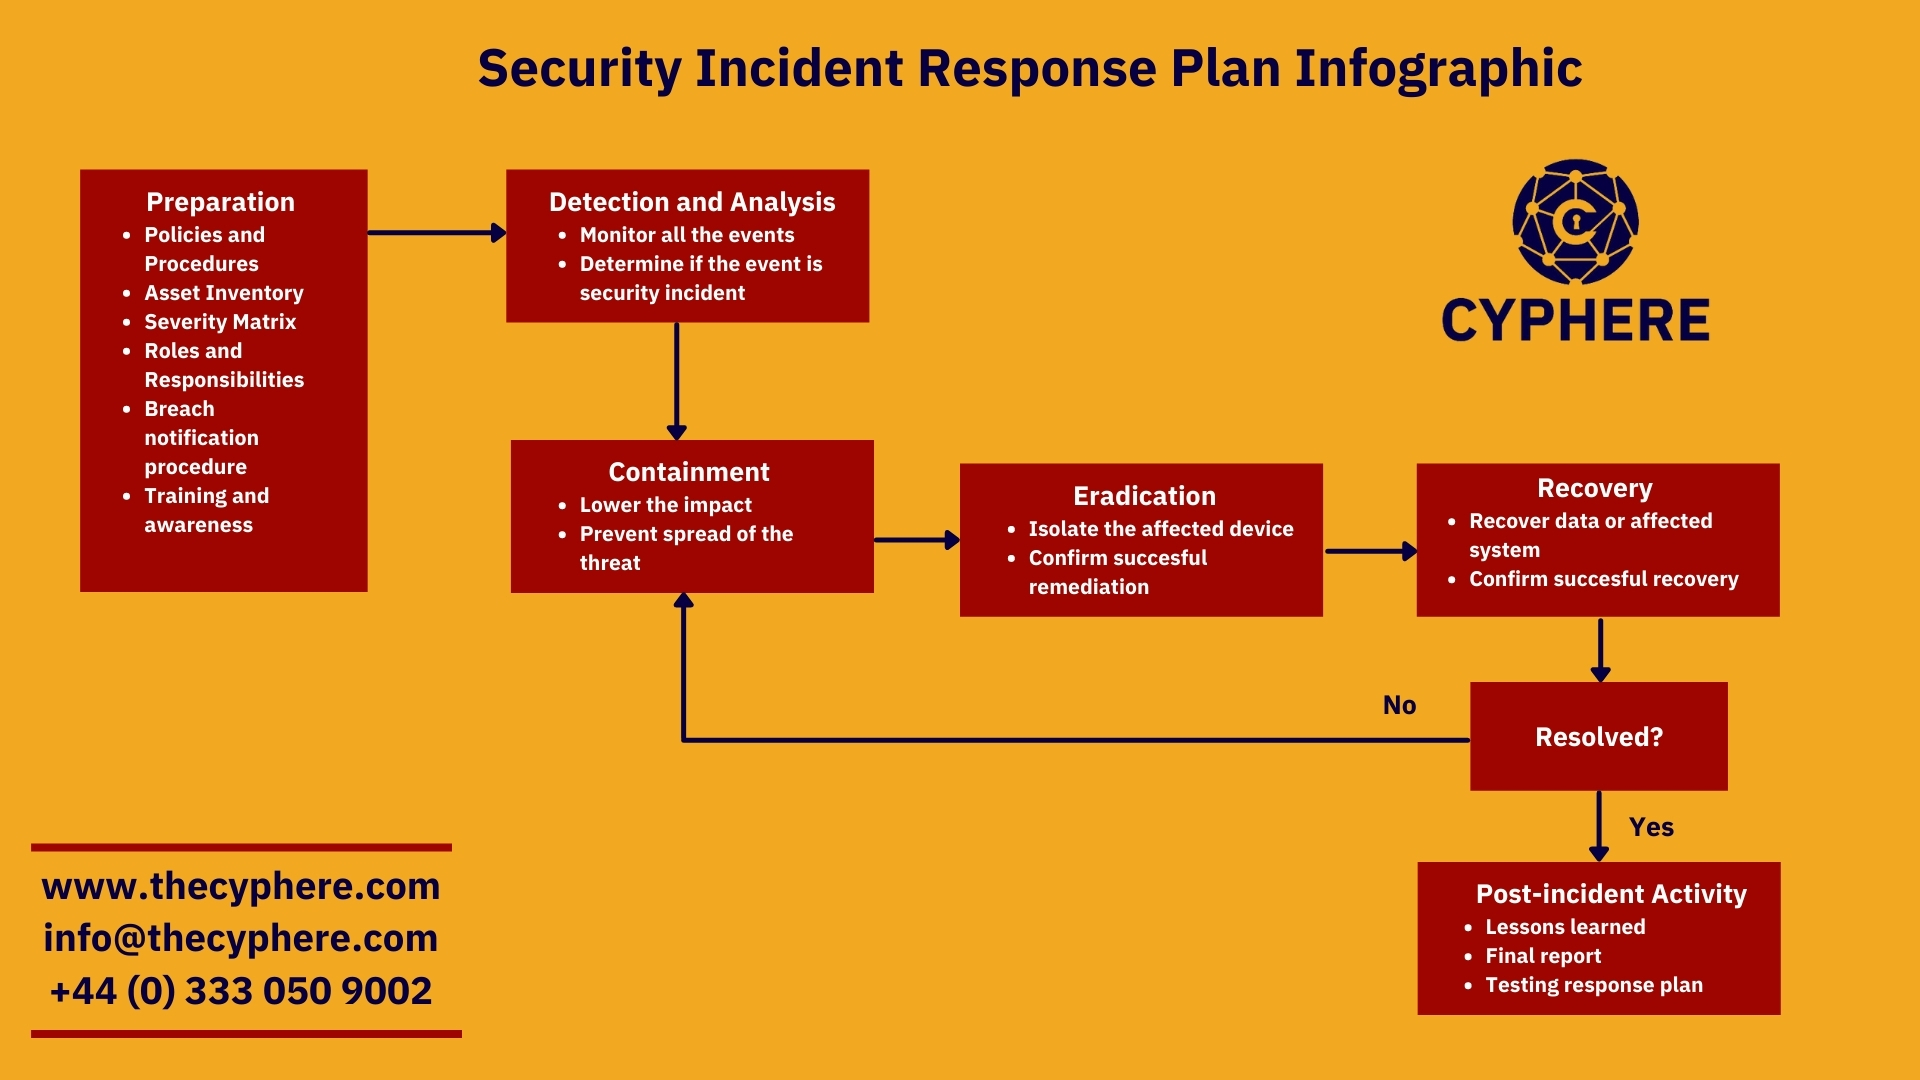 Security incident response plan infographic